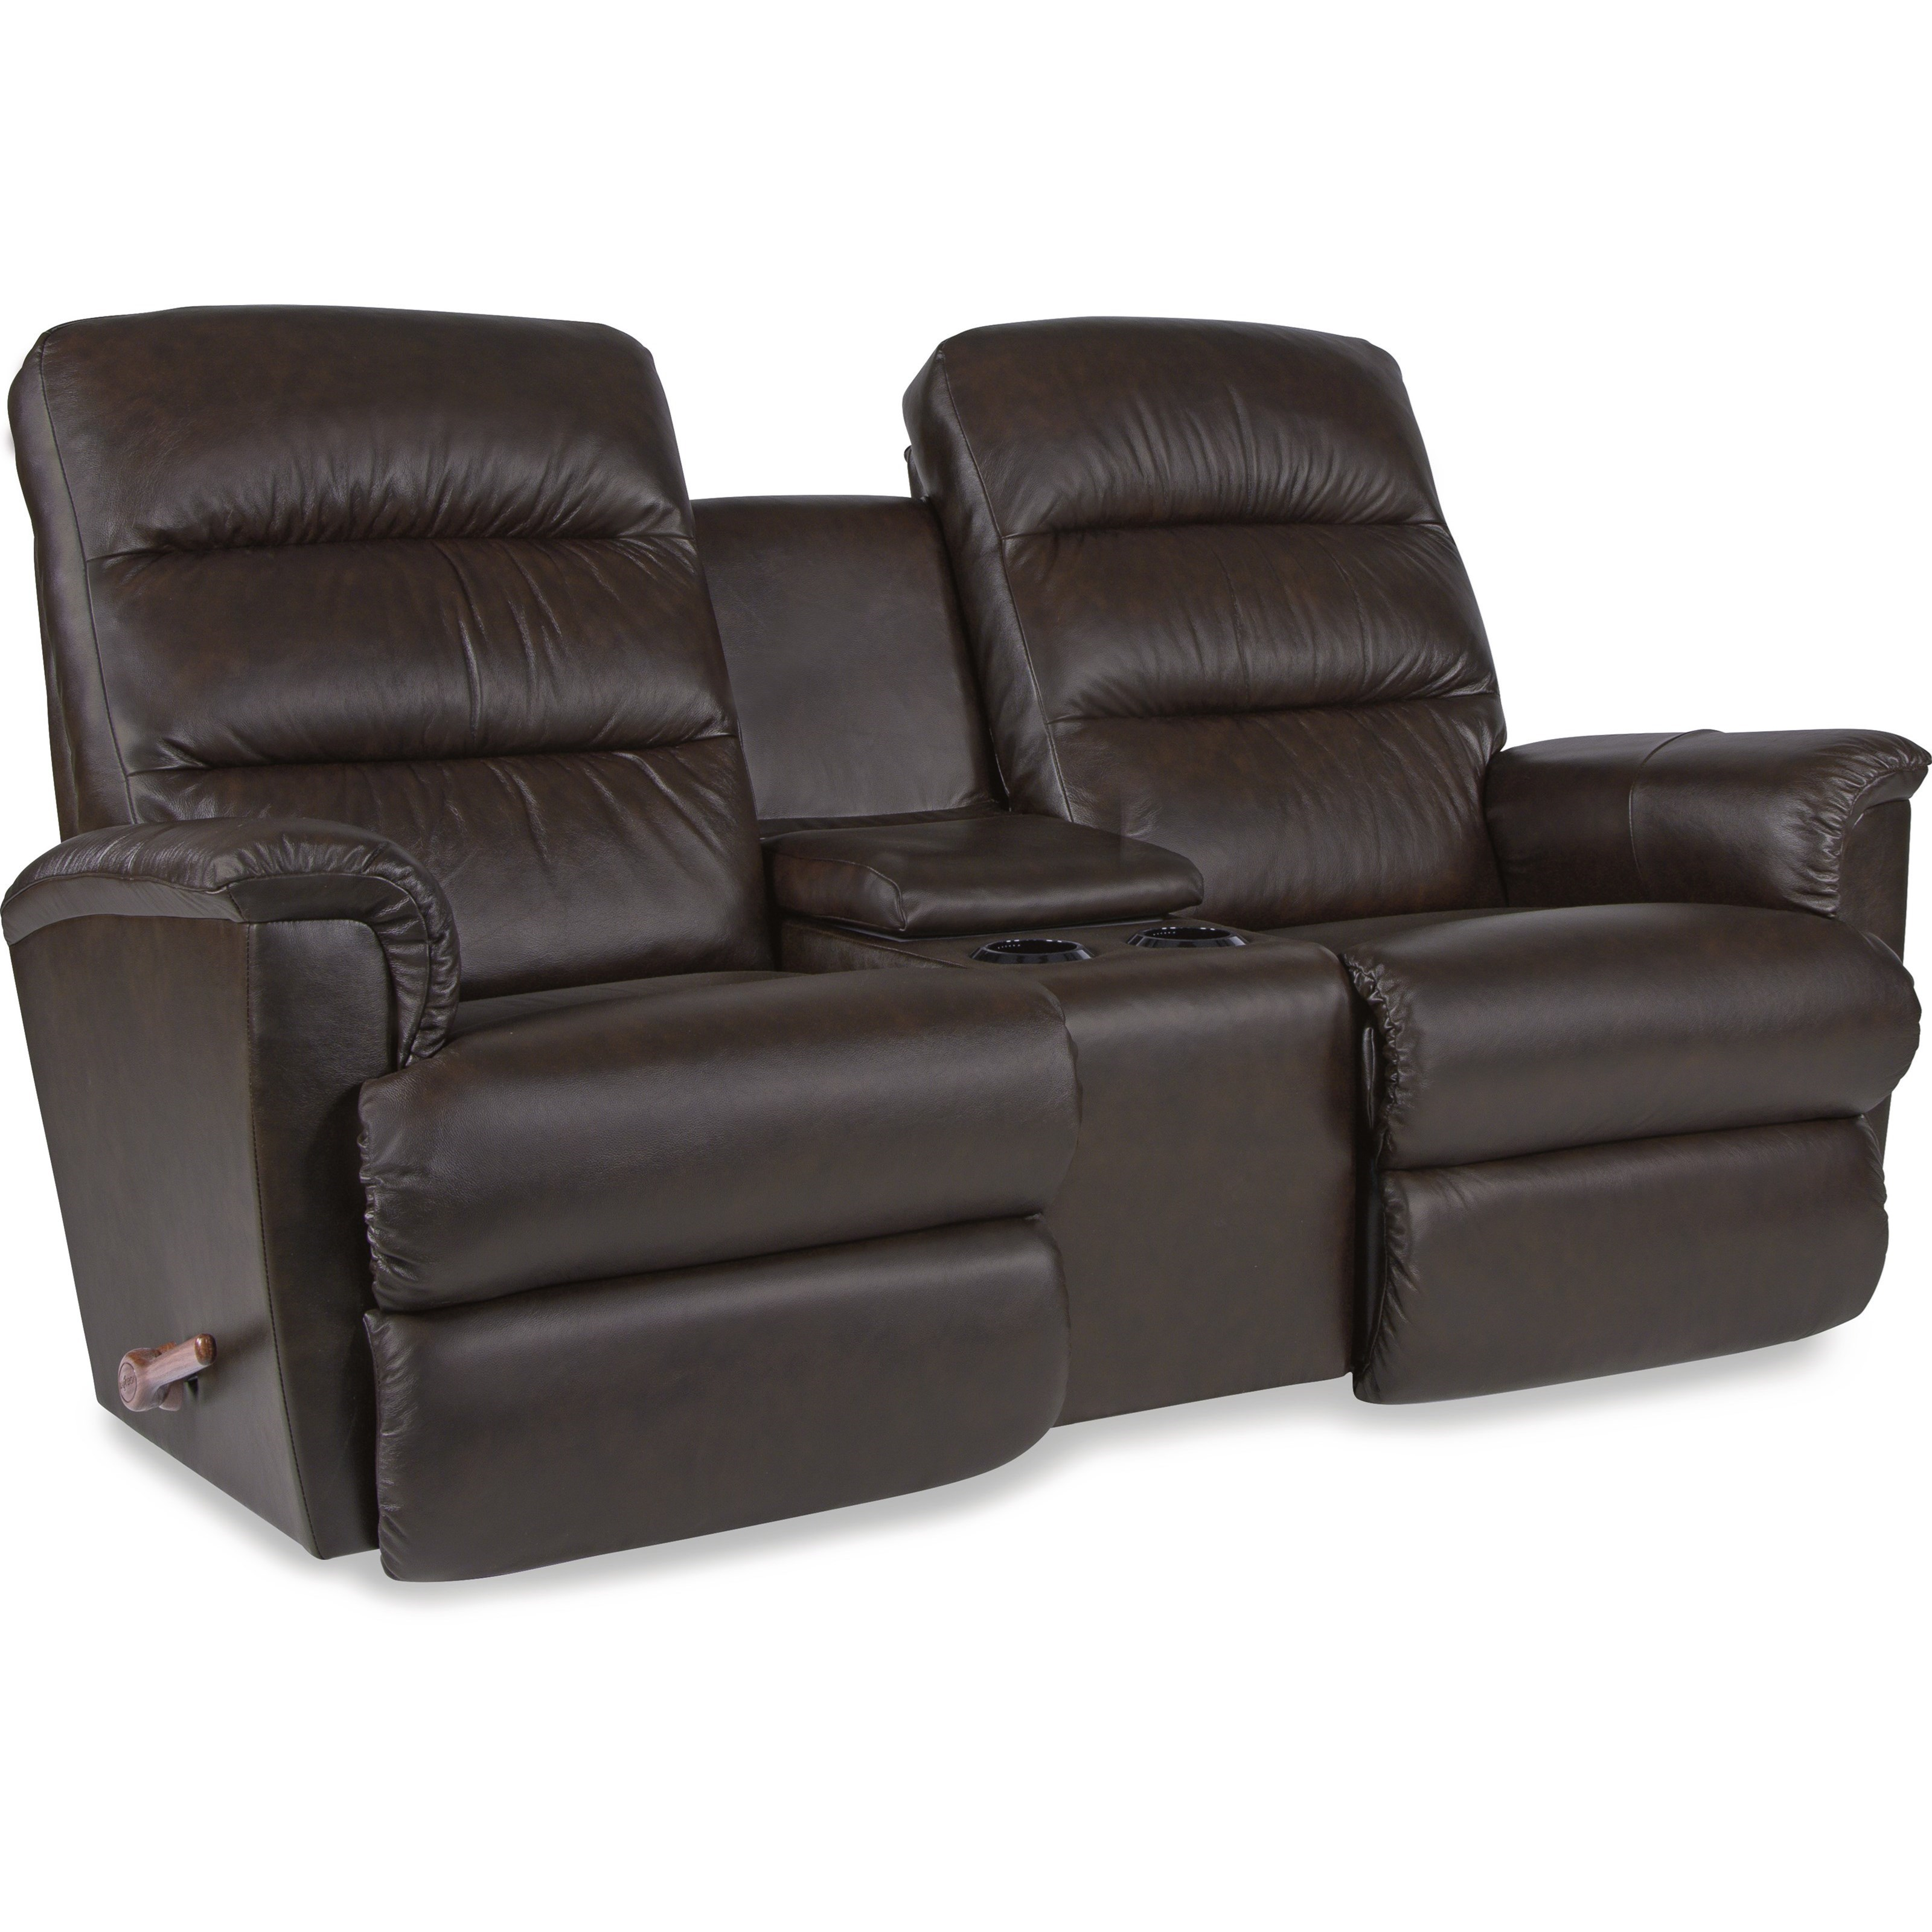 La z boy tripoli wall saver reclining loveseat with cupholder and storage console knight - Ways of accessorizing love seats ...